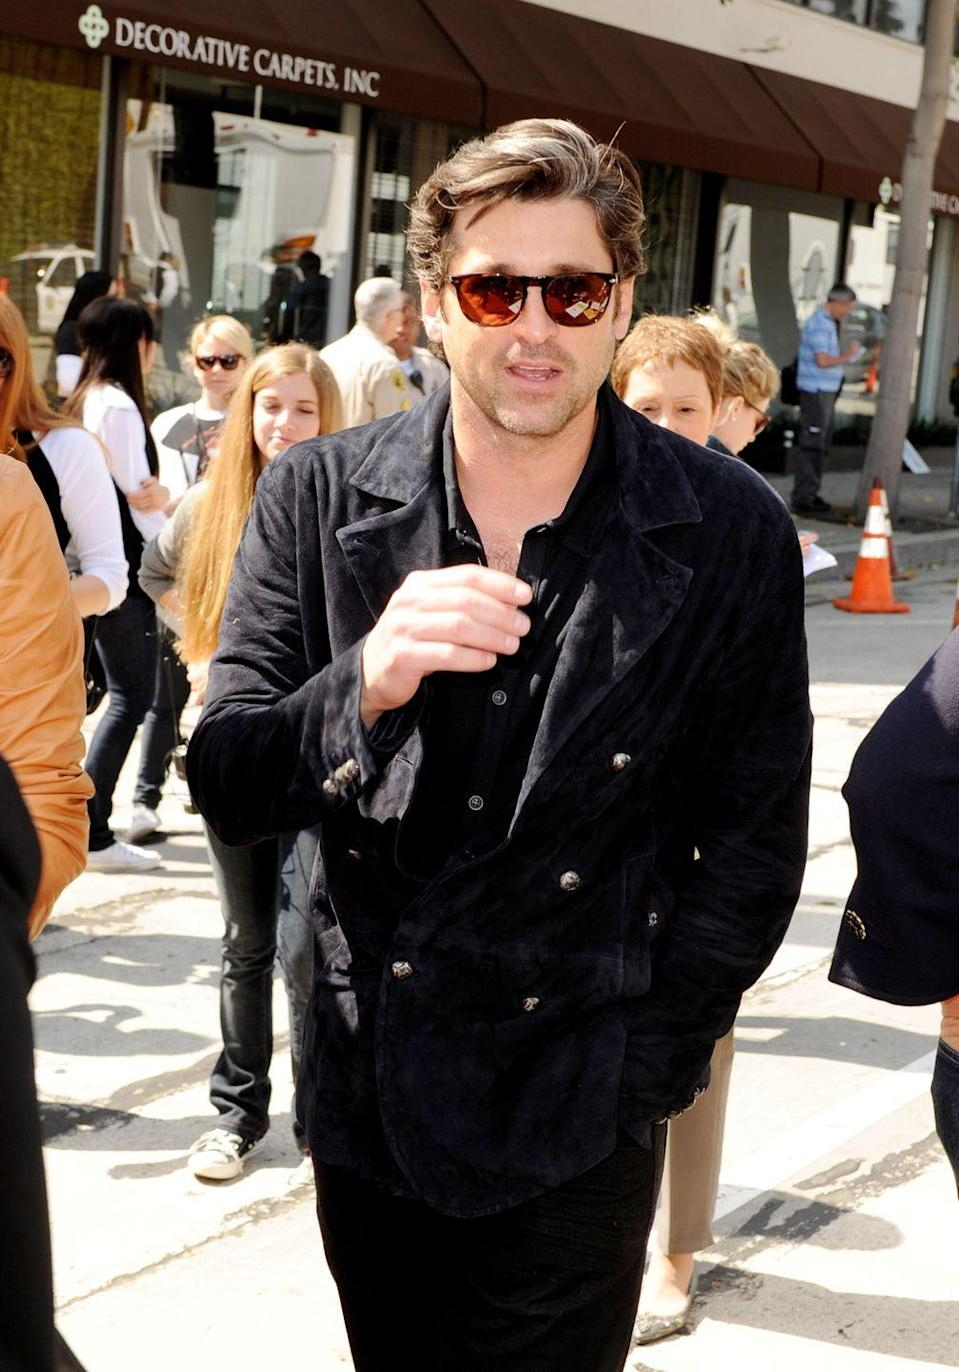 <p>Patrick Dempsey rolling up to a John Varvatos event in all John Varvatos is unmatched. Varvatos' penchant for cool textures on a dark color palette is very Dempsey's vibes. </p>